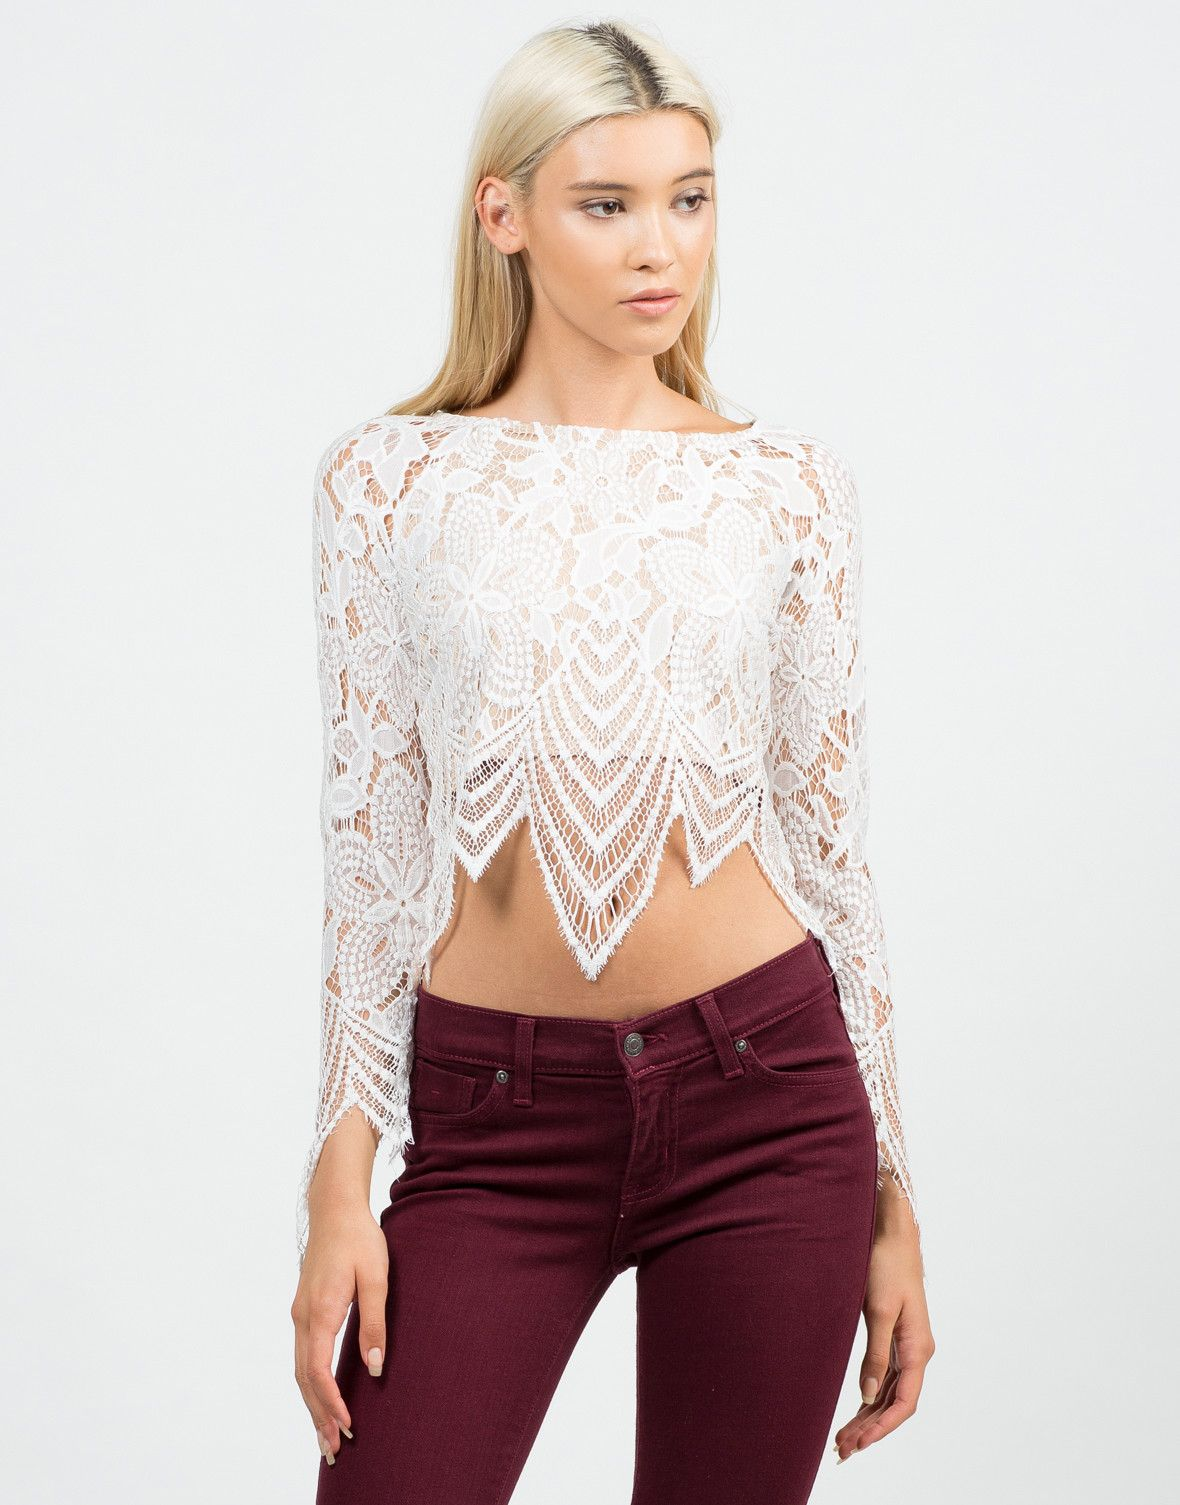 9a895b7525cdb Floral Lace Crop Top - White Top - Long Sleeve Top – Tops – 2020AVE